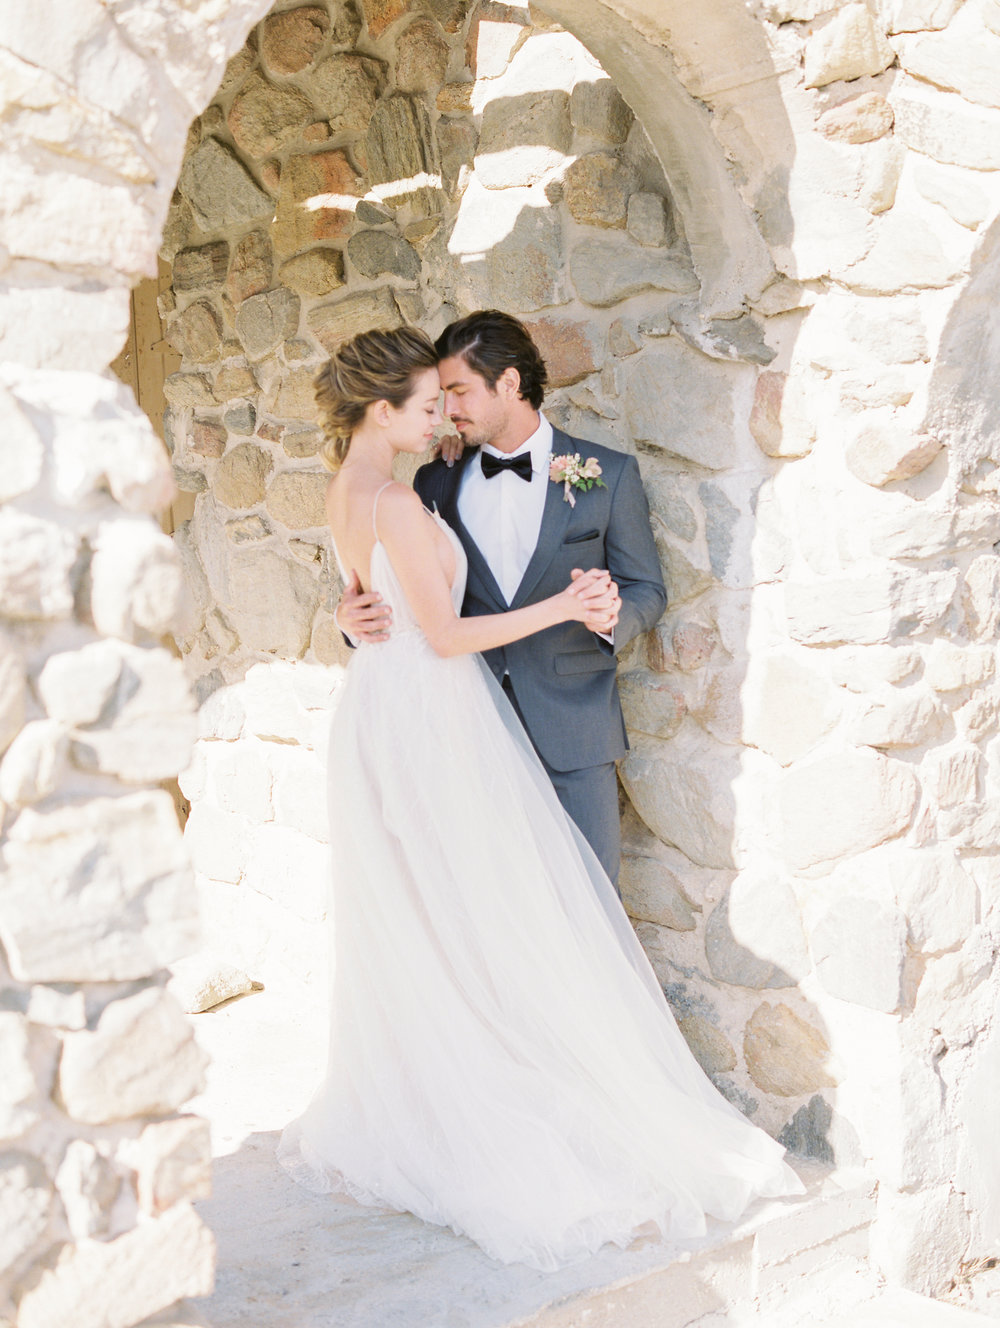 Romantic Moments for the Bride and Groom with Flowers by Finding Flora